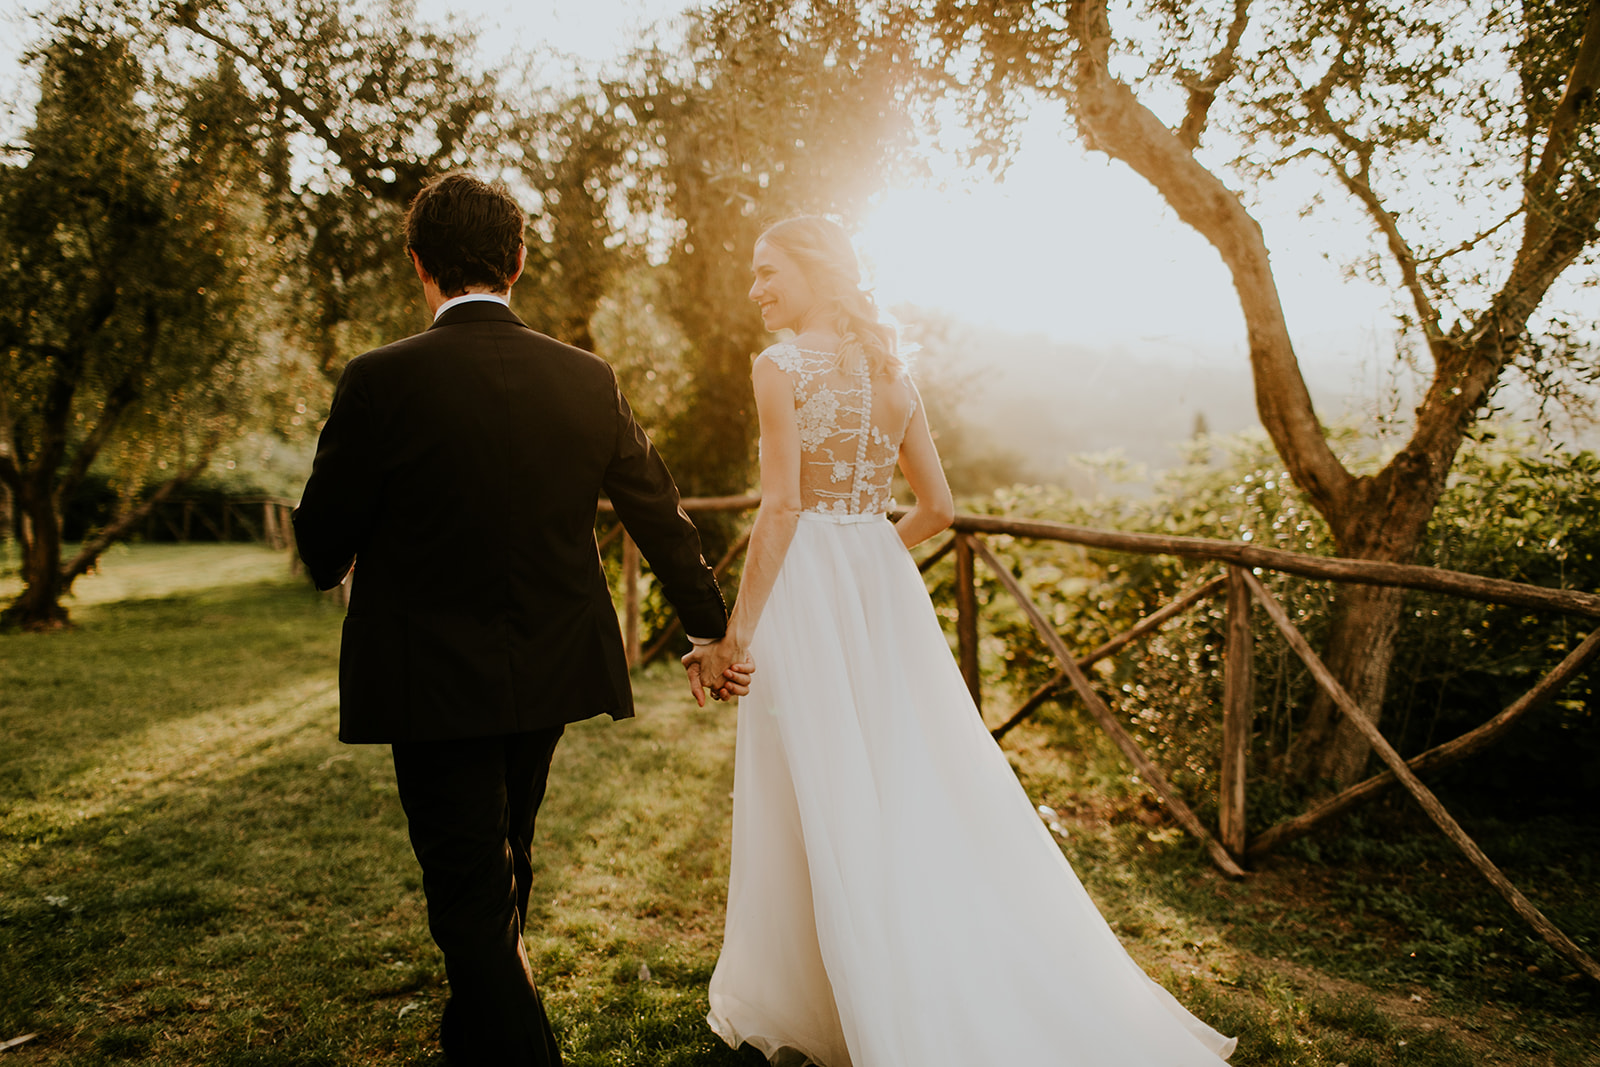 Bride and groom walking at sunset at their romantic destination wedding at La Badia di Orvieto in Italy